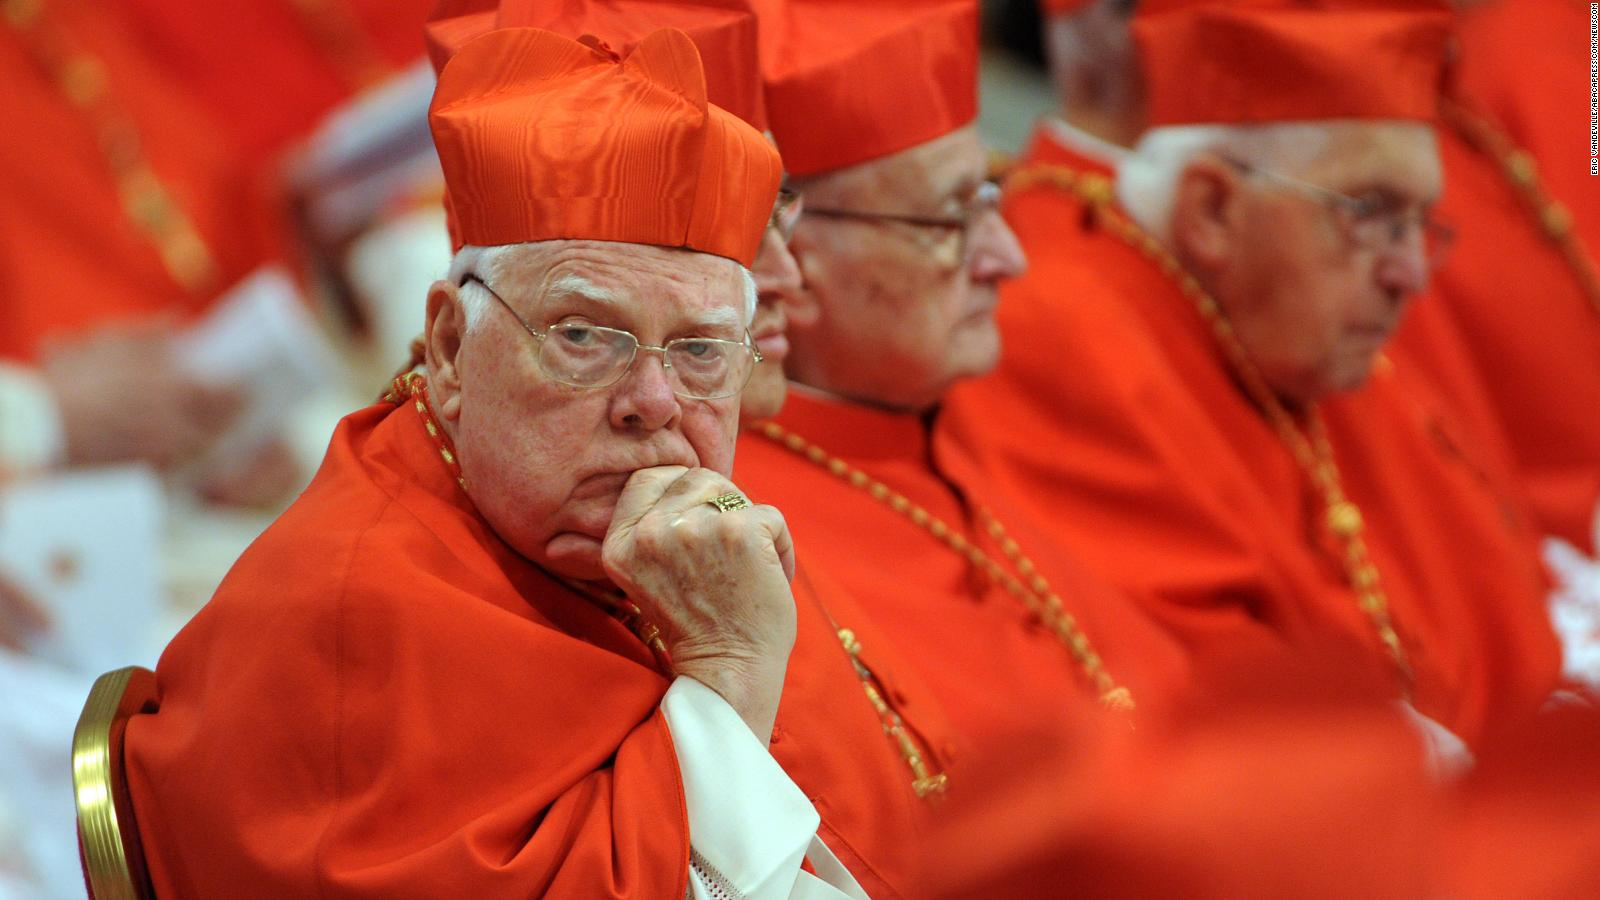 Kinder Küche Kirche As Scientific Law Former Archbishop Bernard Law Dies At 86